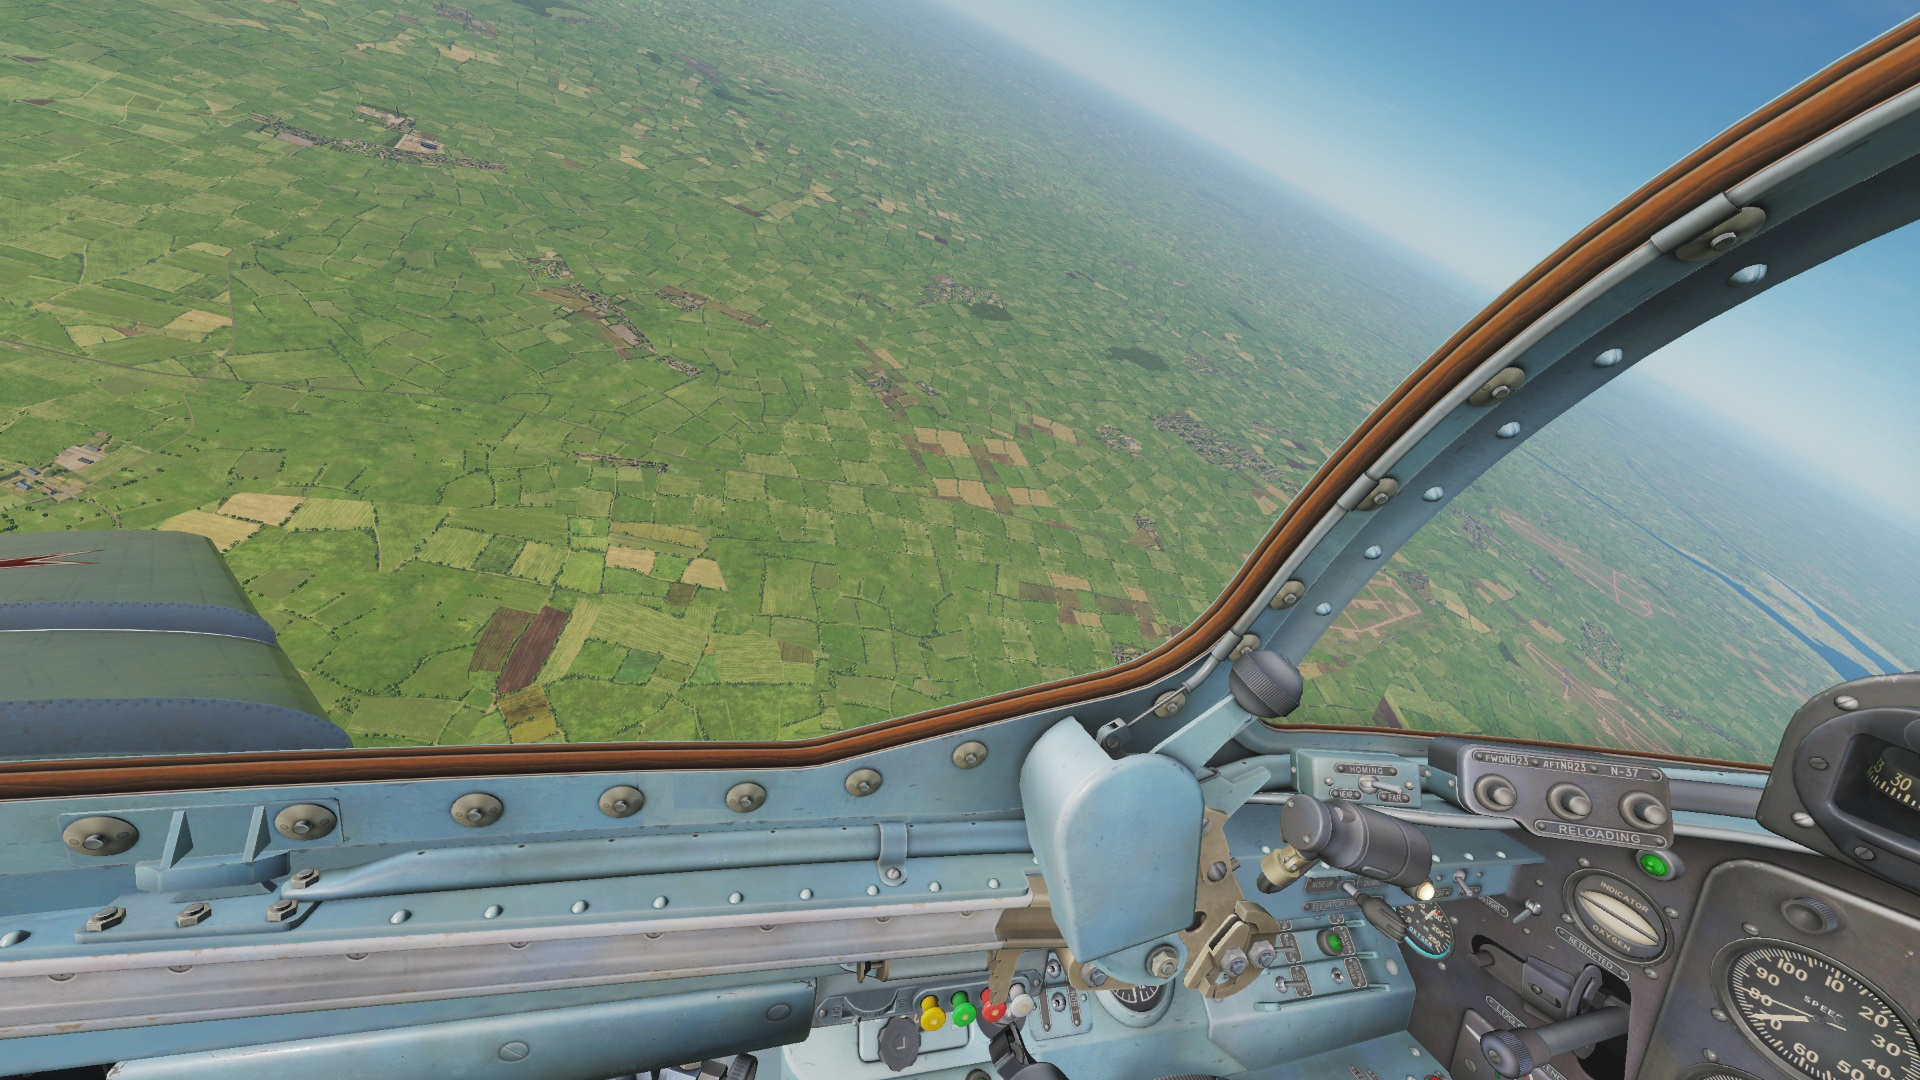 MiG-15 clean cockpit without reflections